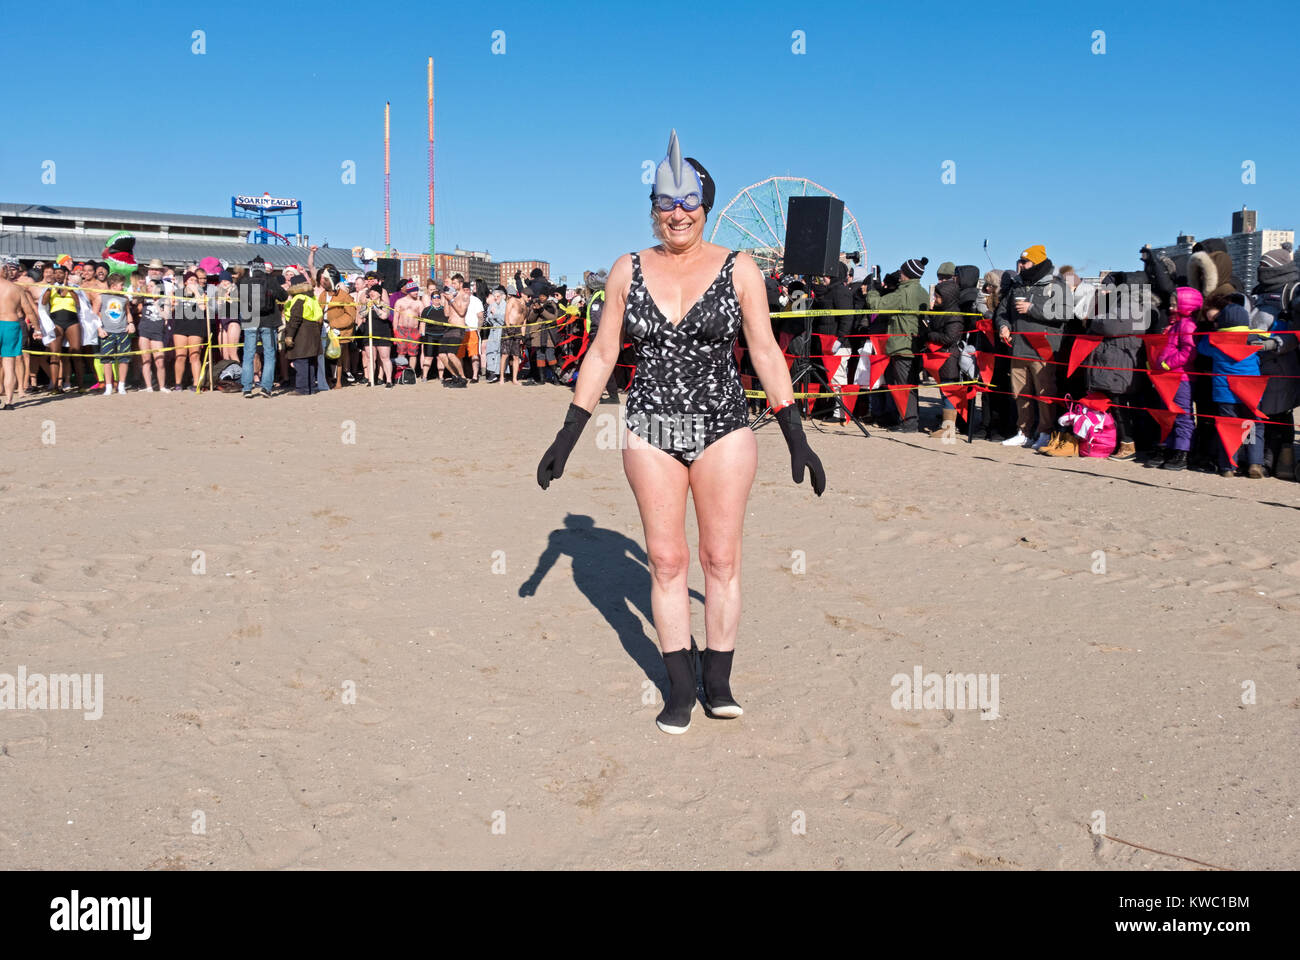 Posed portrait of a middle aged woman about to enter the water at the 114th Polar Bear Club New Year's Day swim. - Stock Image